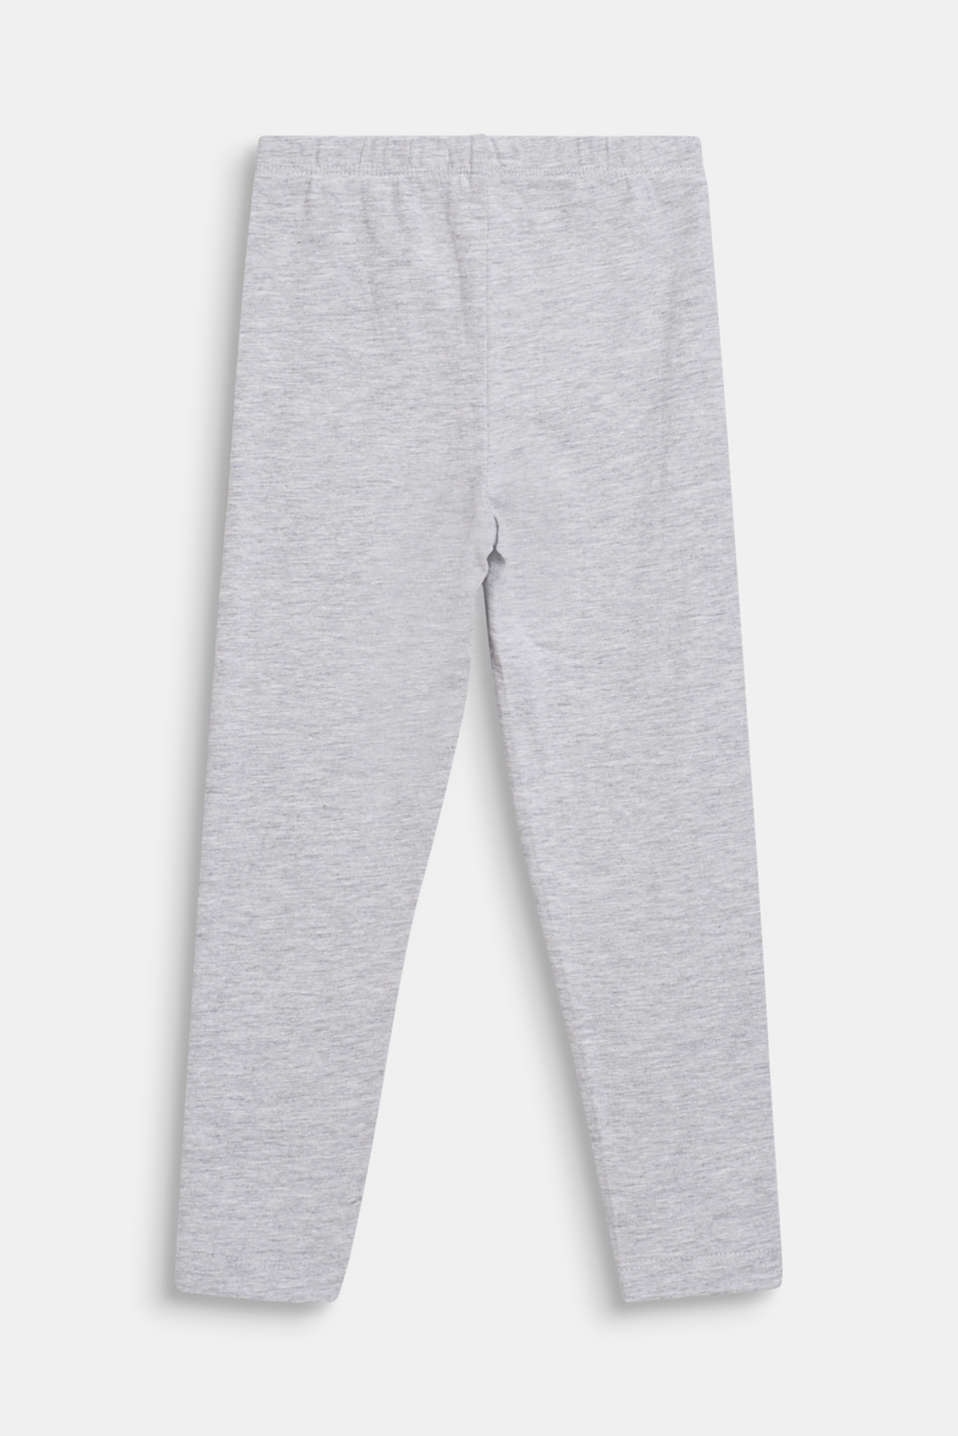 Opaque stretch jersey leggings, HEATHER SILVER, detail image number 1